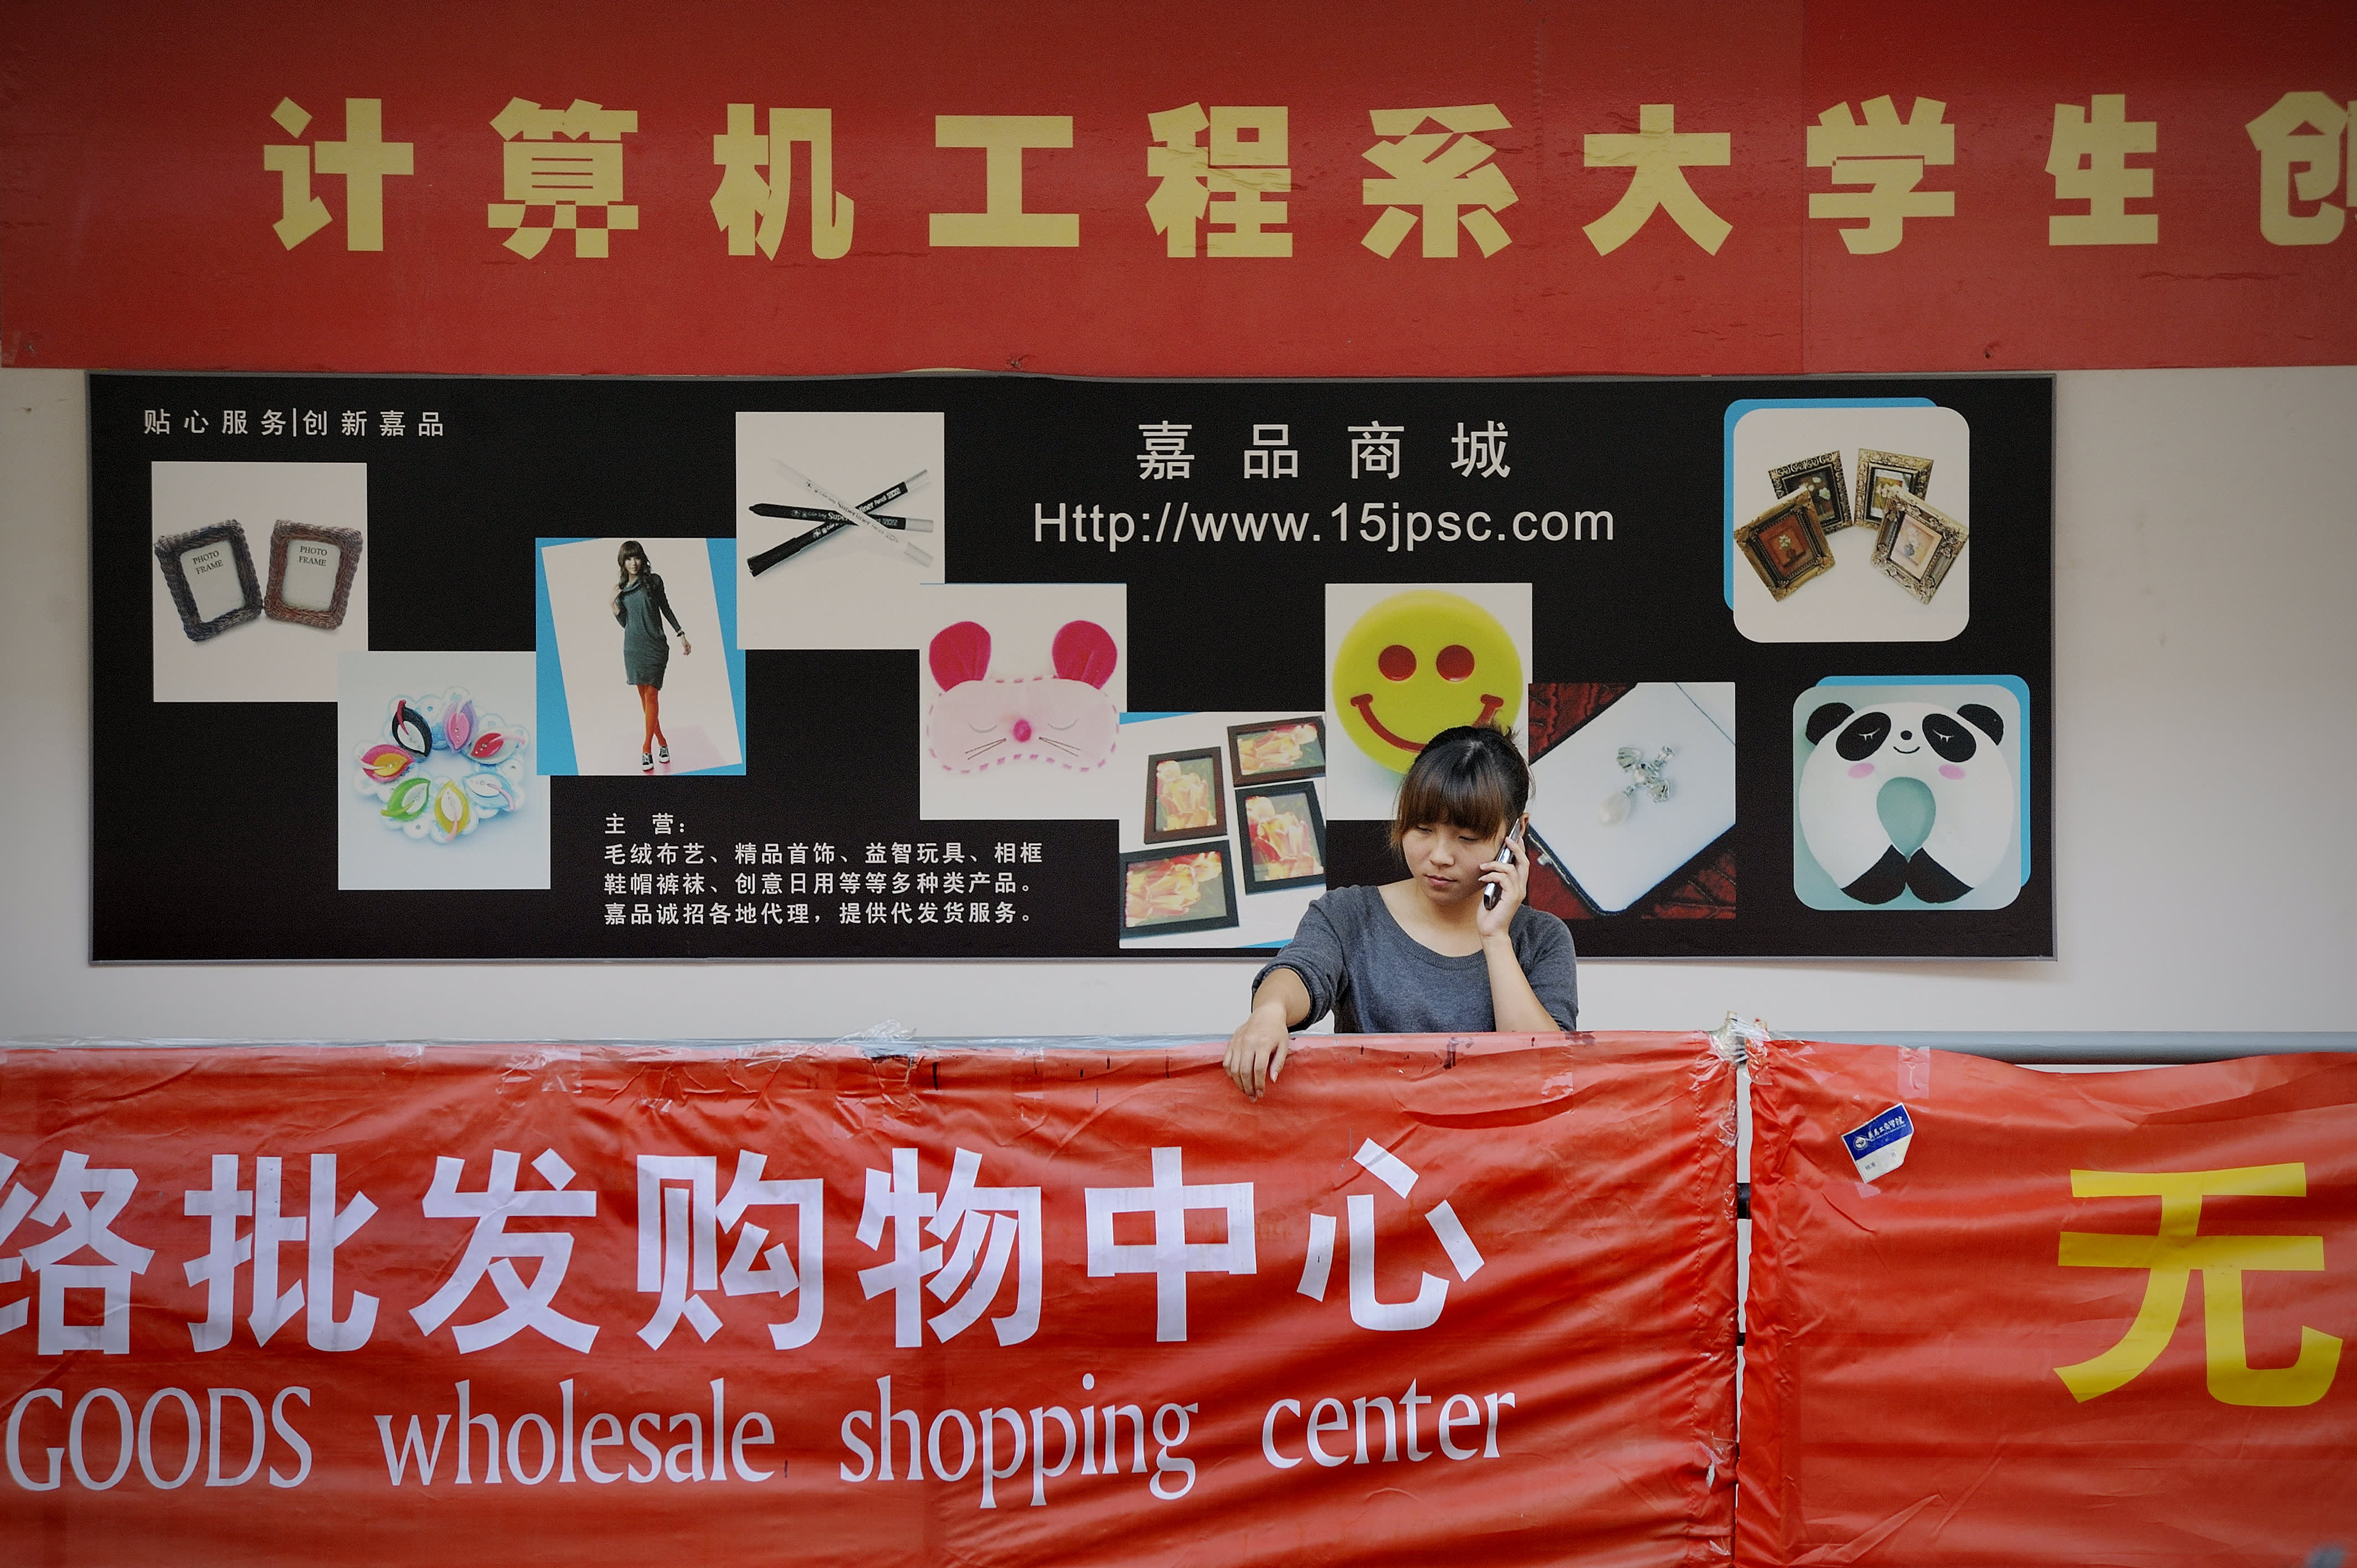 Move Over Amazonhere Comes A Chinese Online Juggernaut